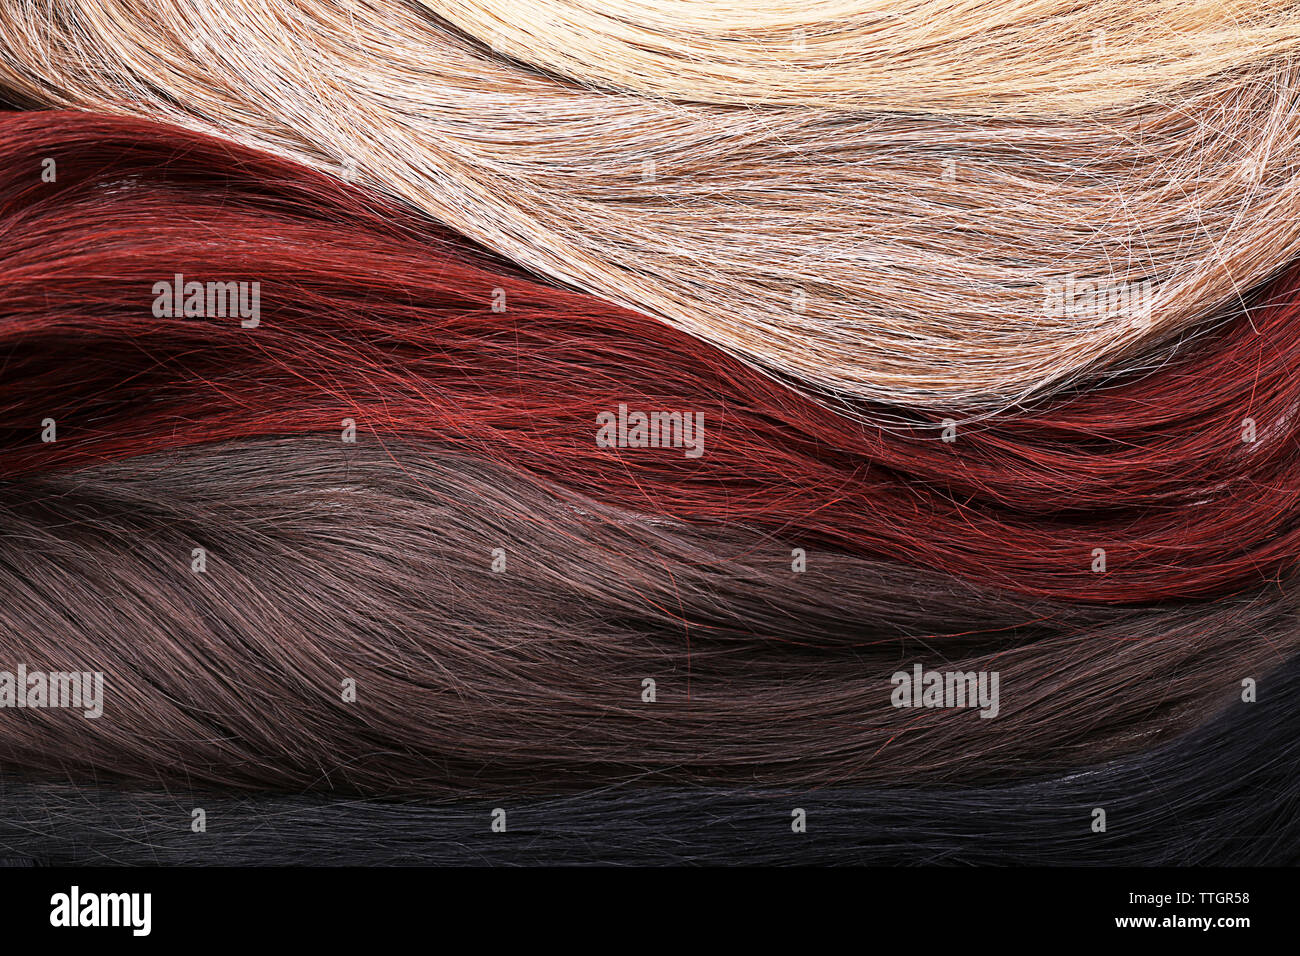 Varicolored strands of hair, close up - Stock Image